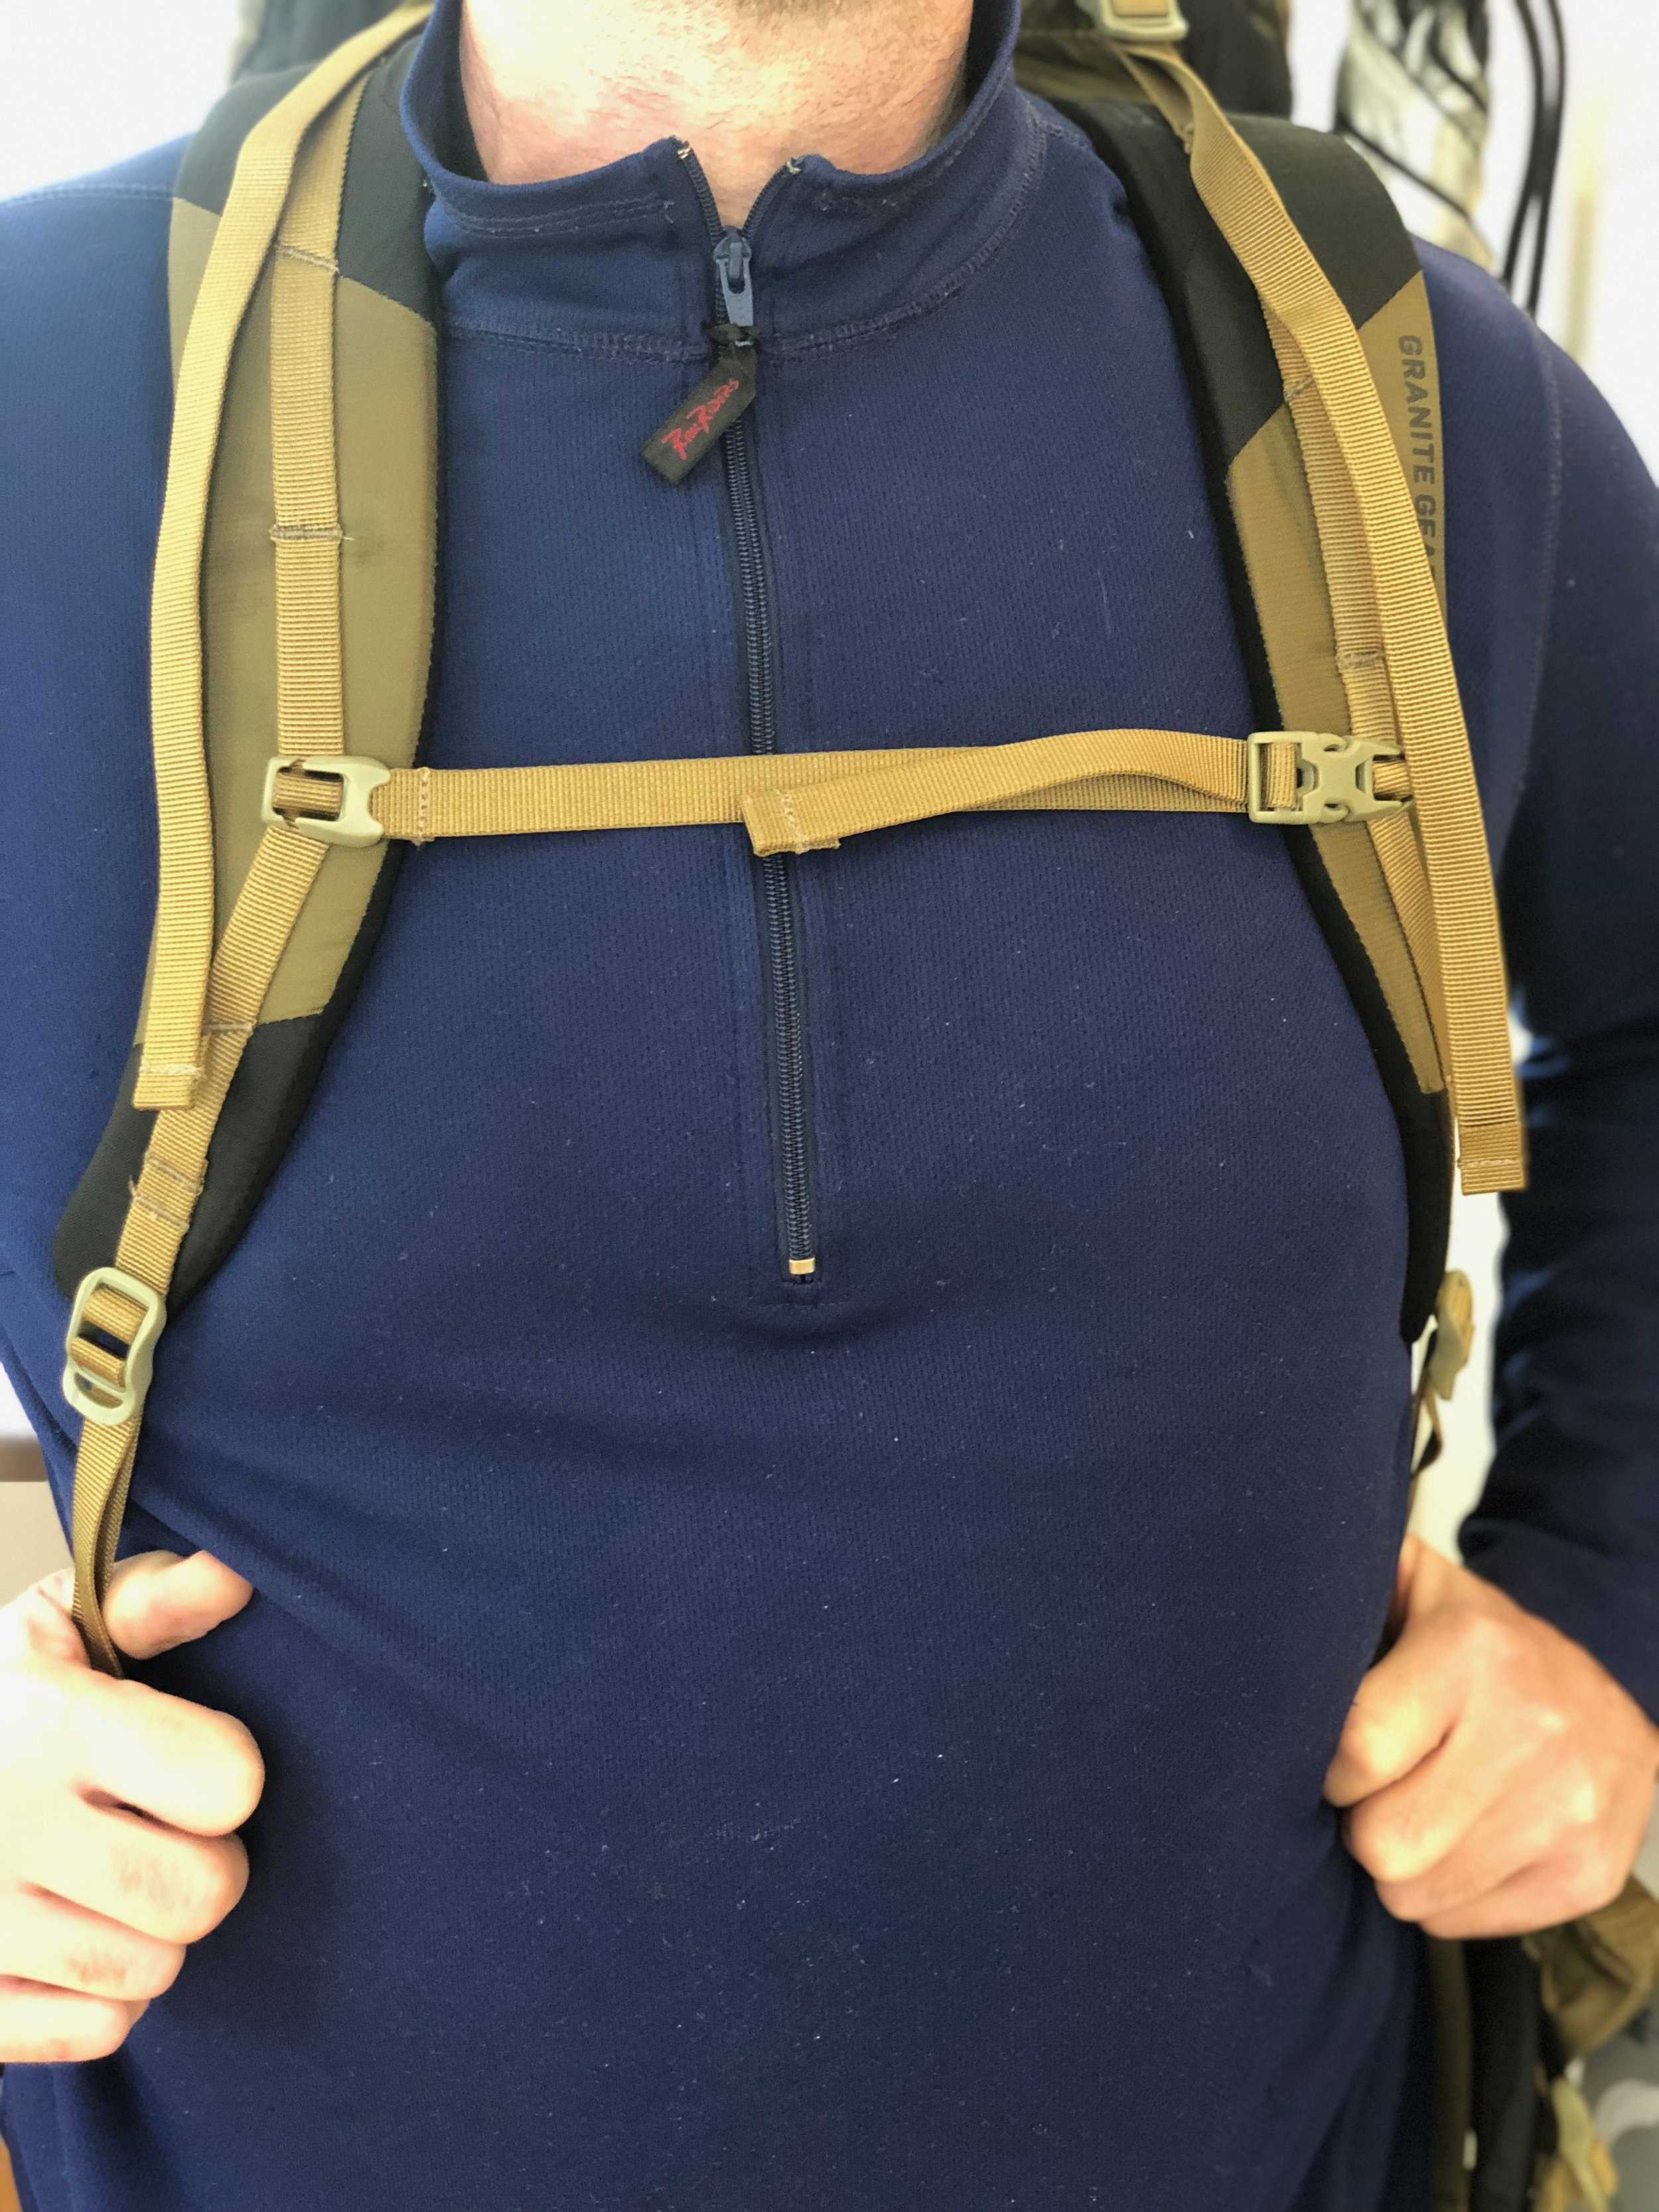 Tightening the sternum strap, shown here, helps relive pressure on your shoulders.